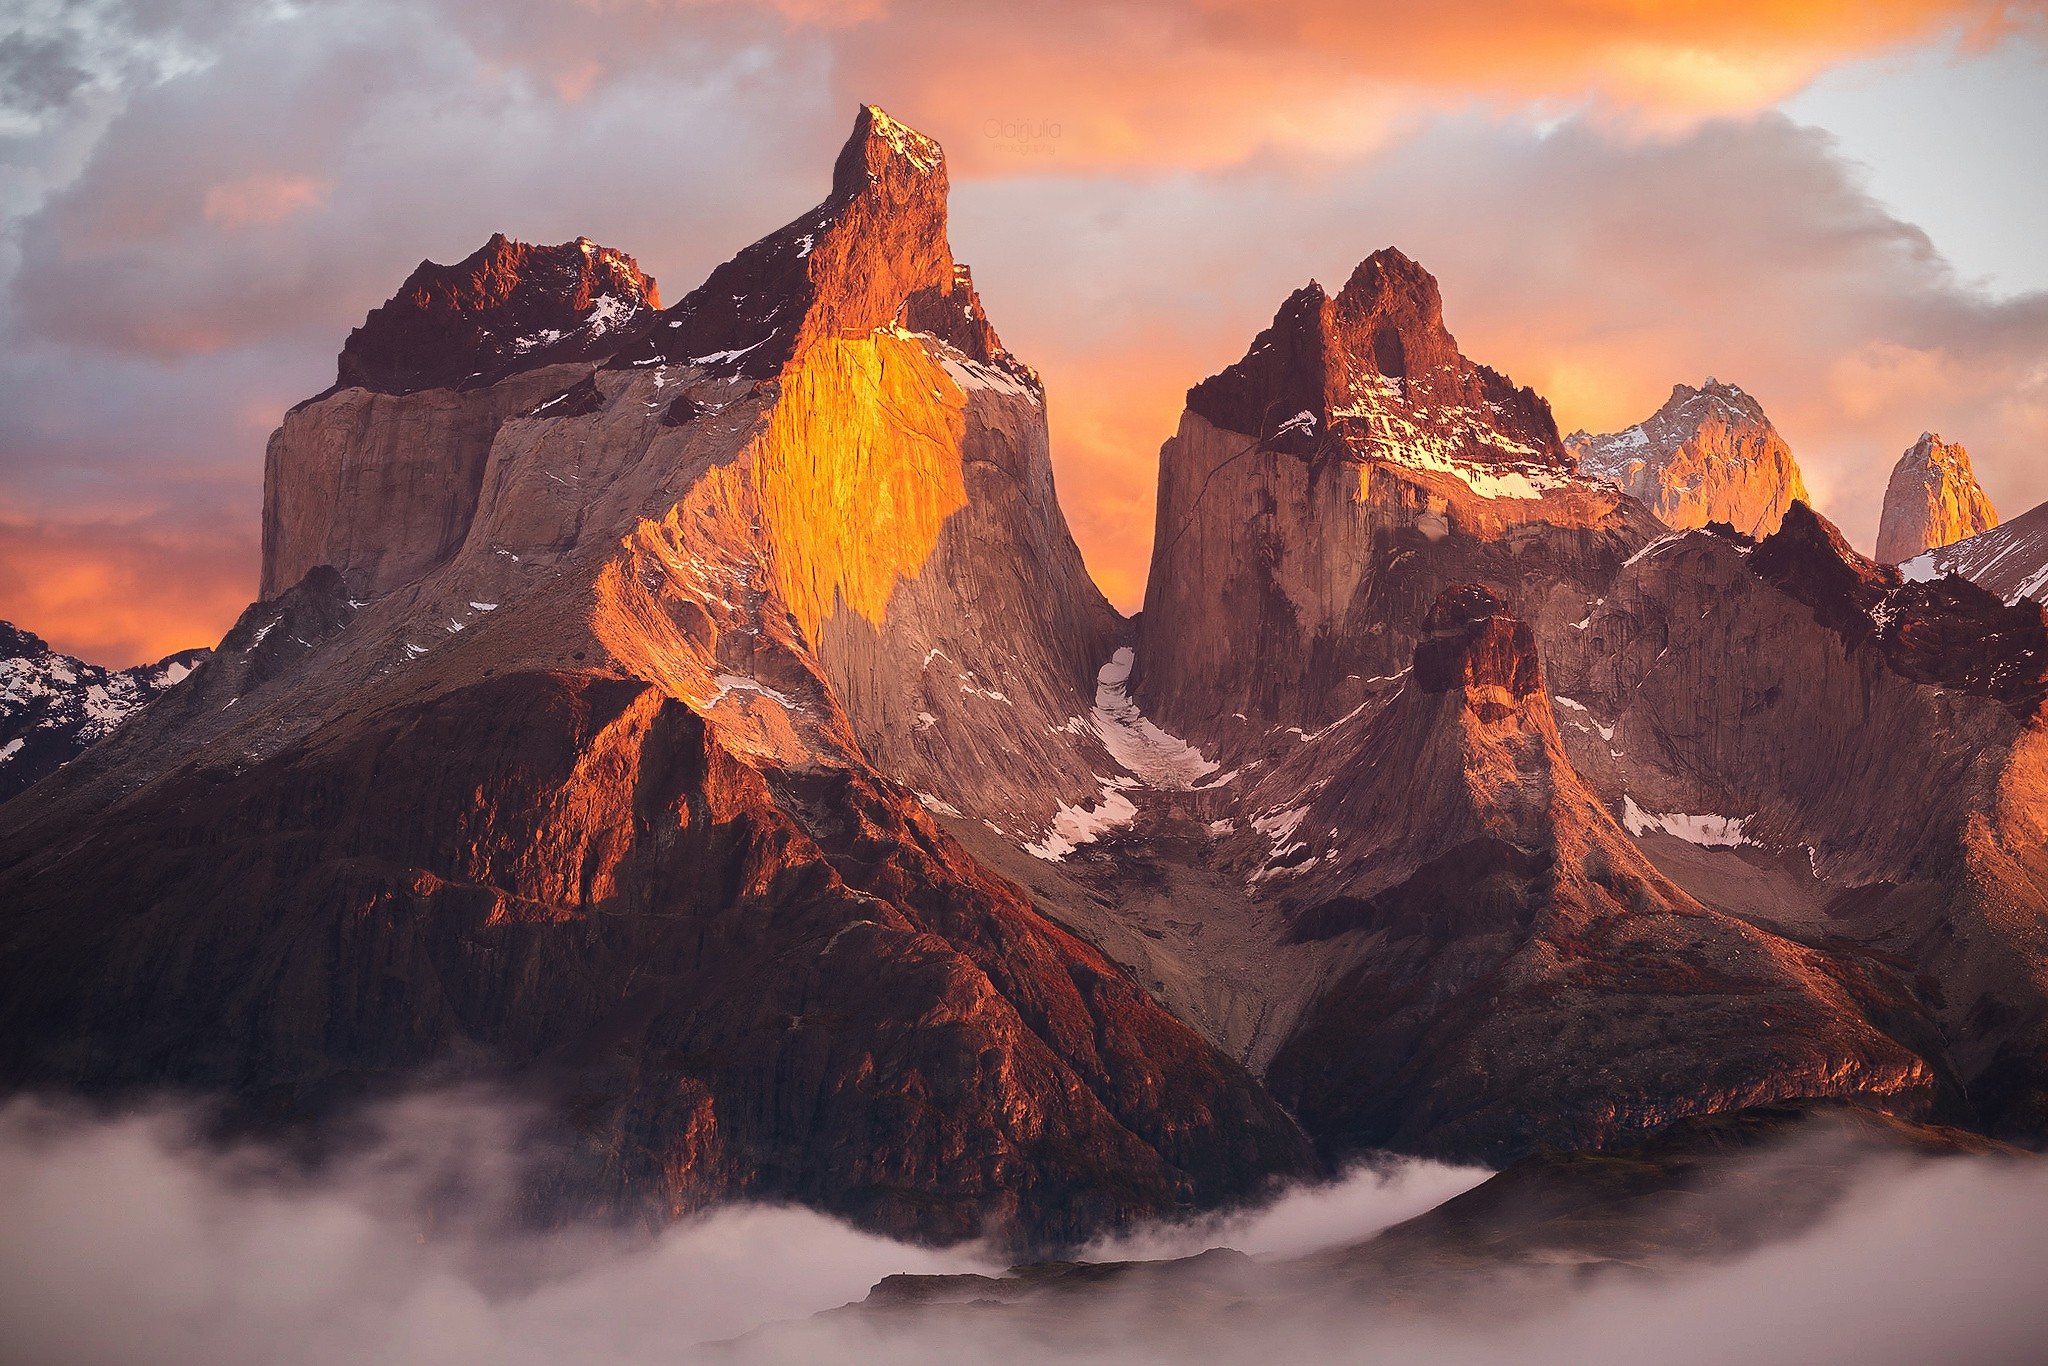 Top 10 3d Wallpapers For Desktop The Andes Mountains Wallpaper Nature And Landscape